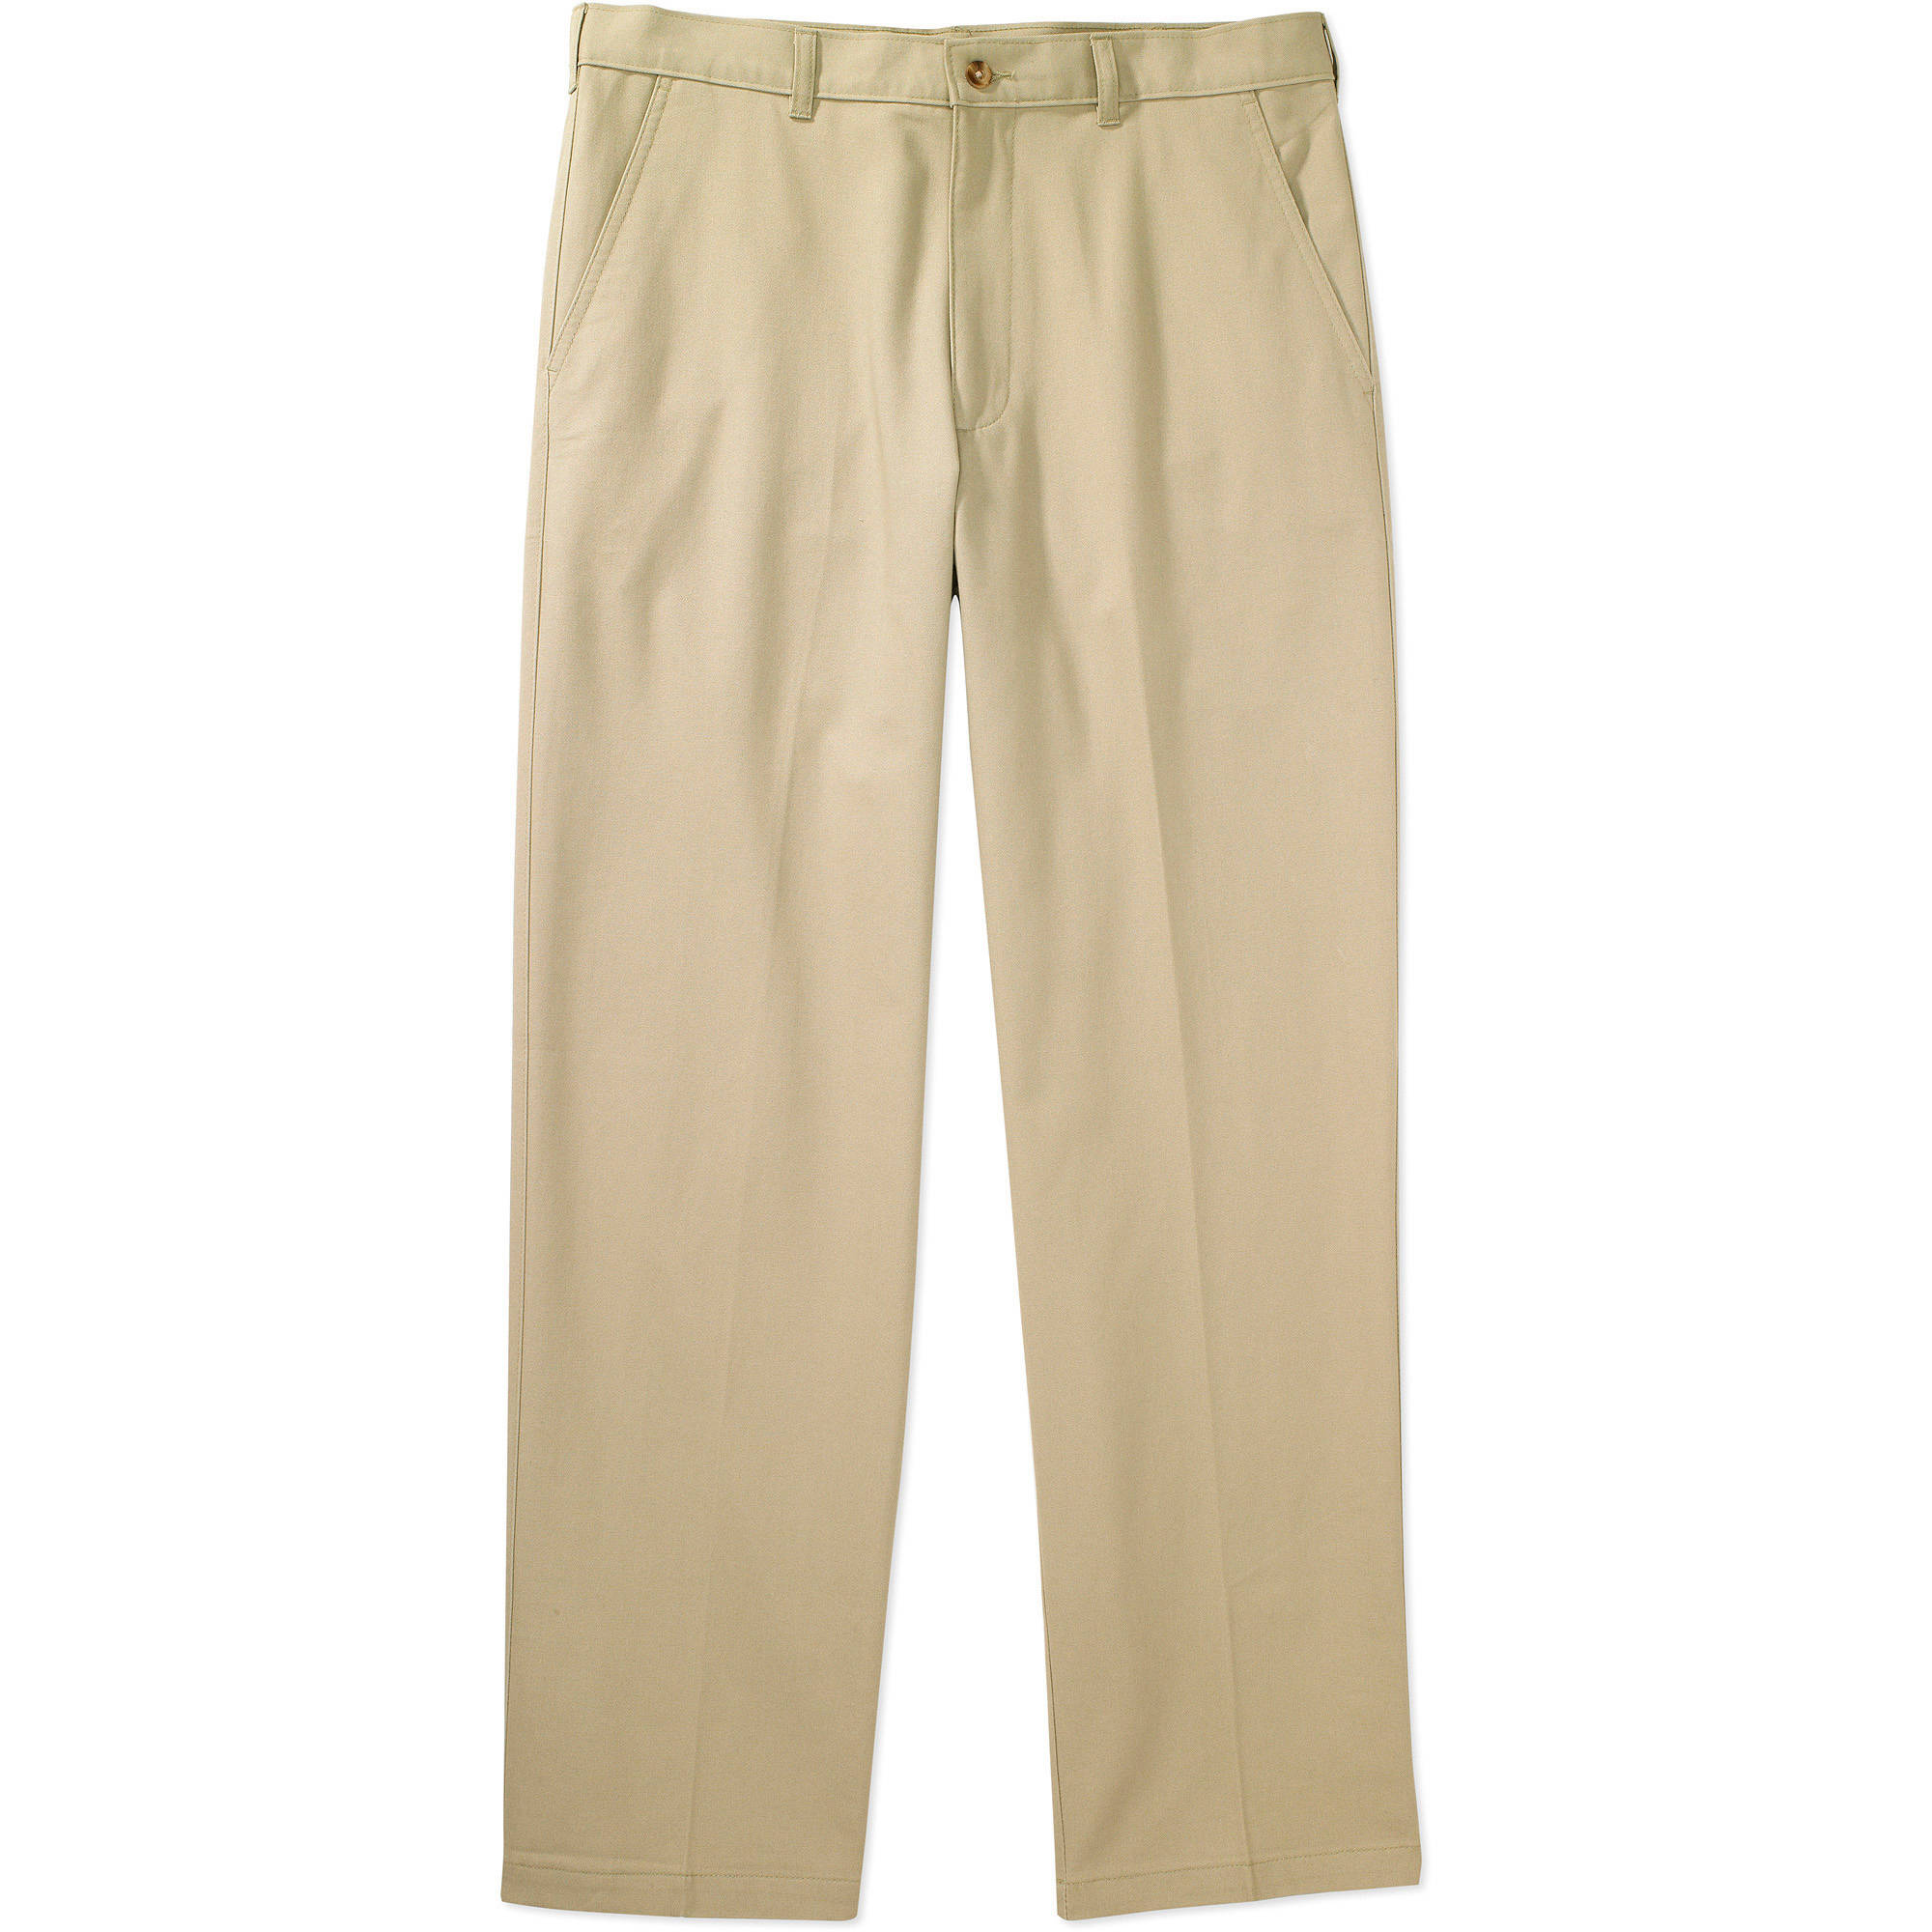 George - Big Men's Flat -Front Wrinkle-Resistant Pants - Walmart.com